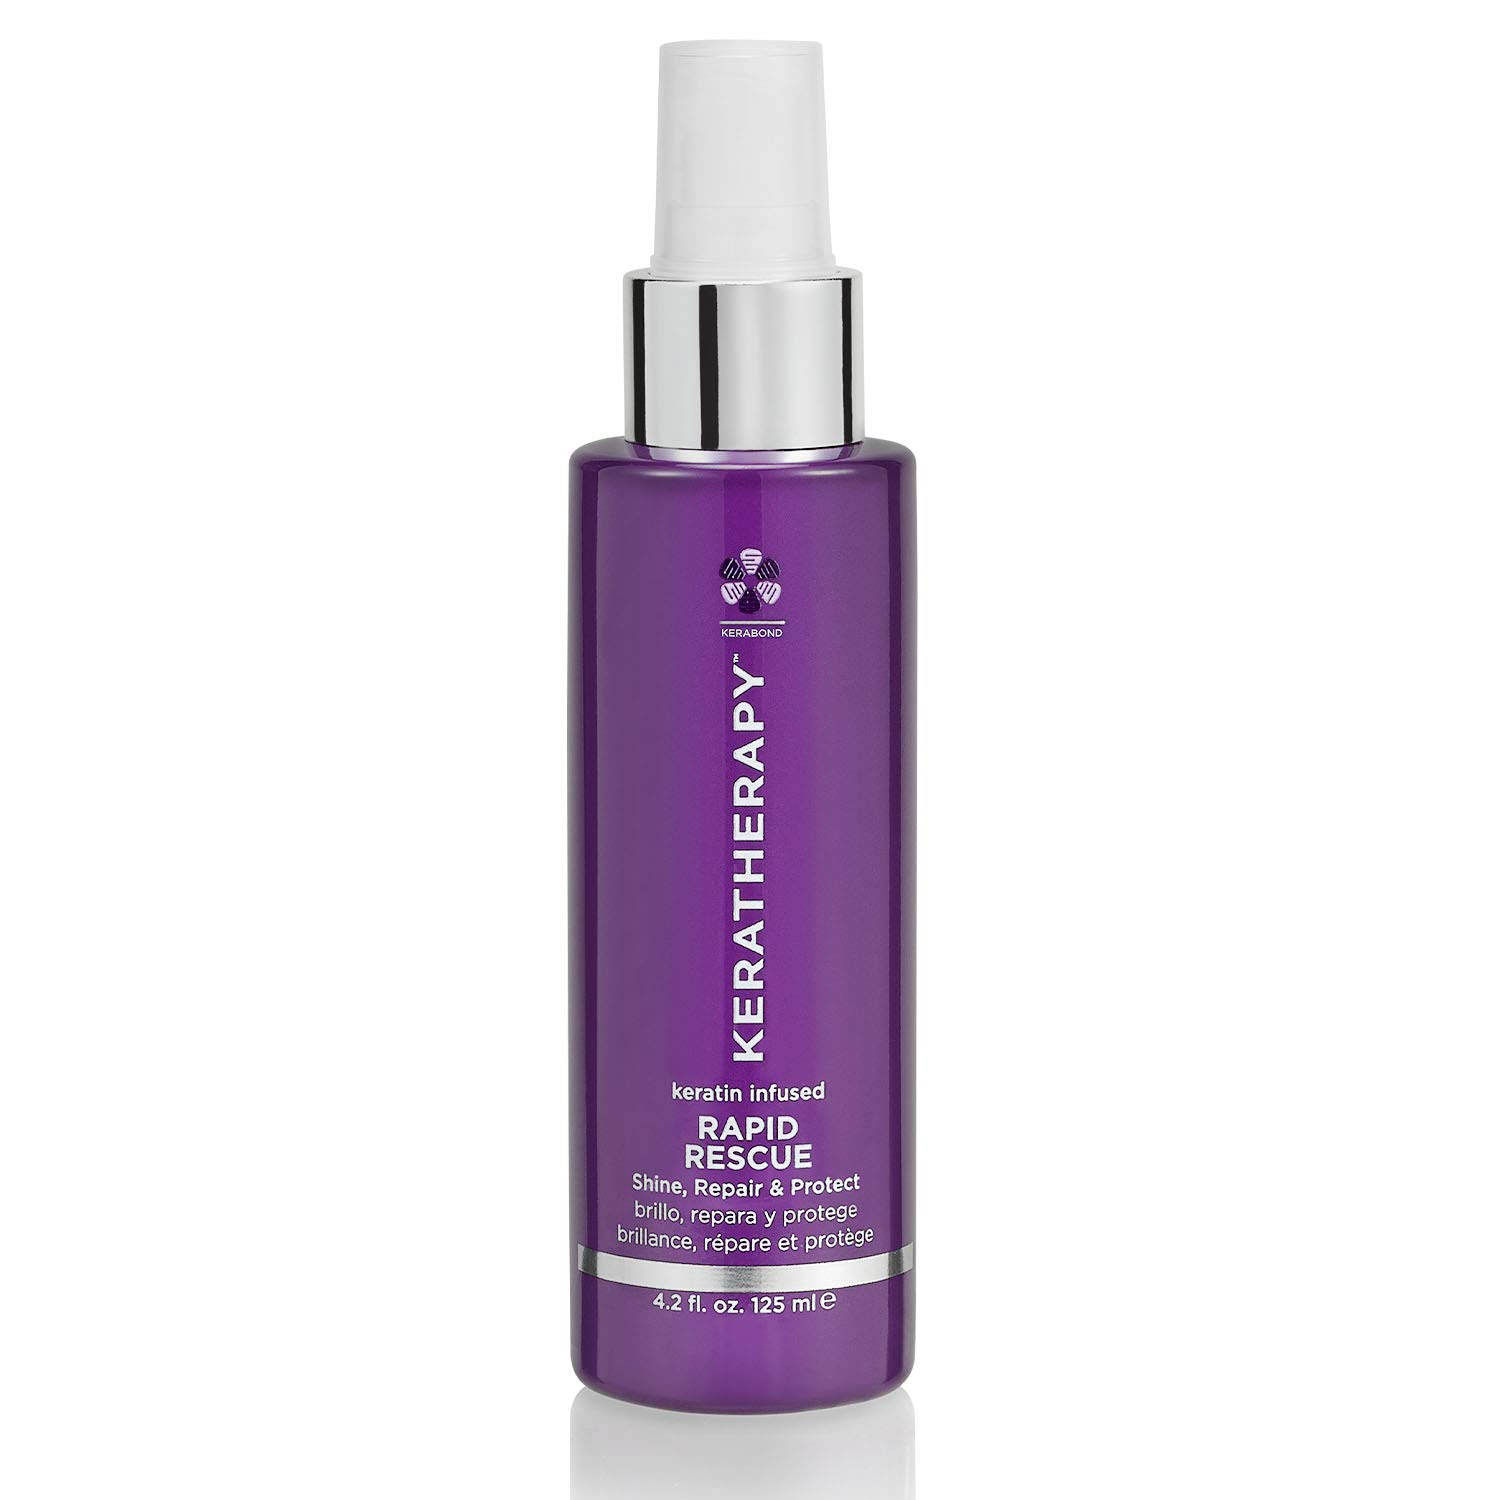 KERATHERAPY Keratin Infused Rapid Rescue Shining Spray, Thermal Hair Protection, 4.2 Fl Oz